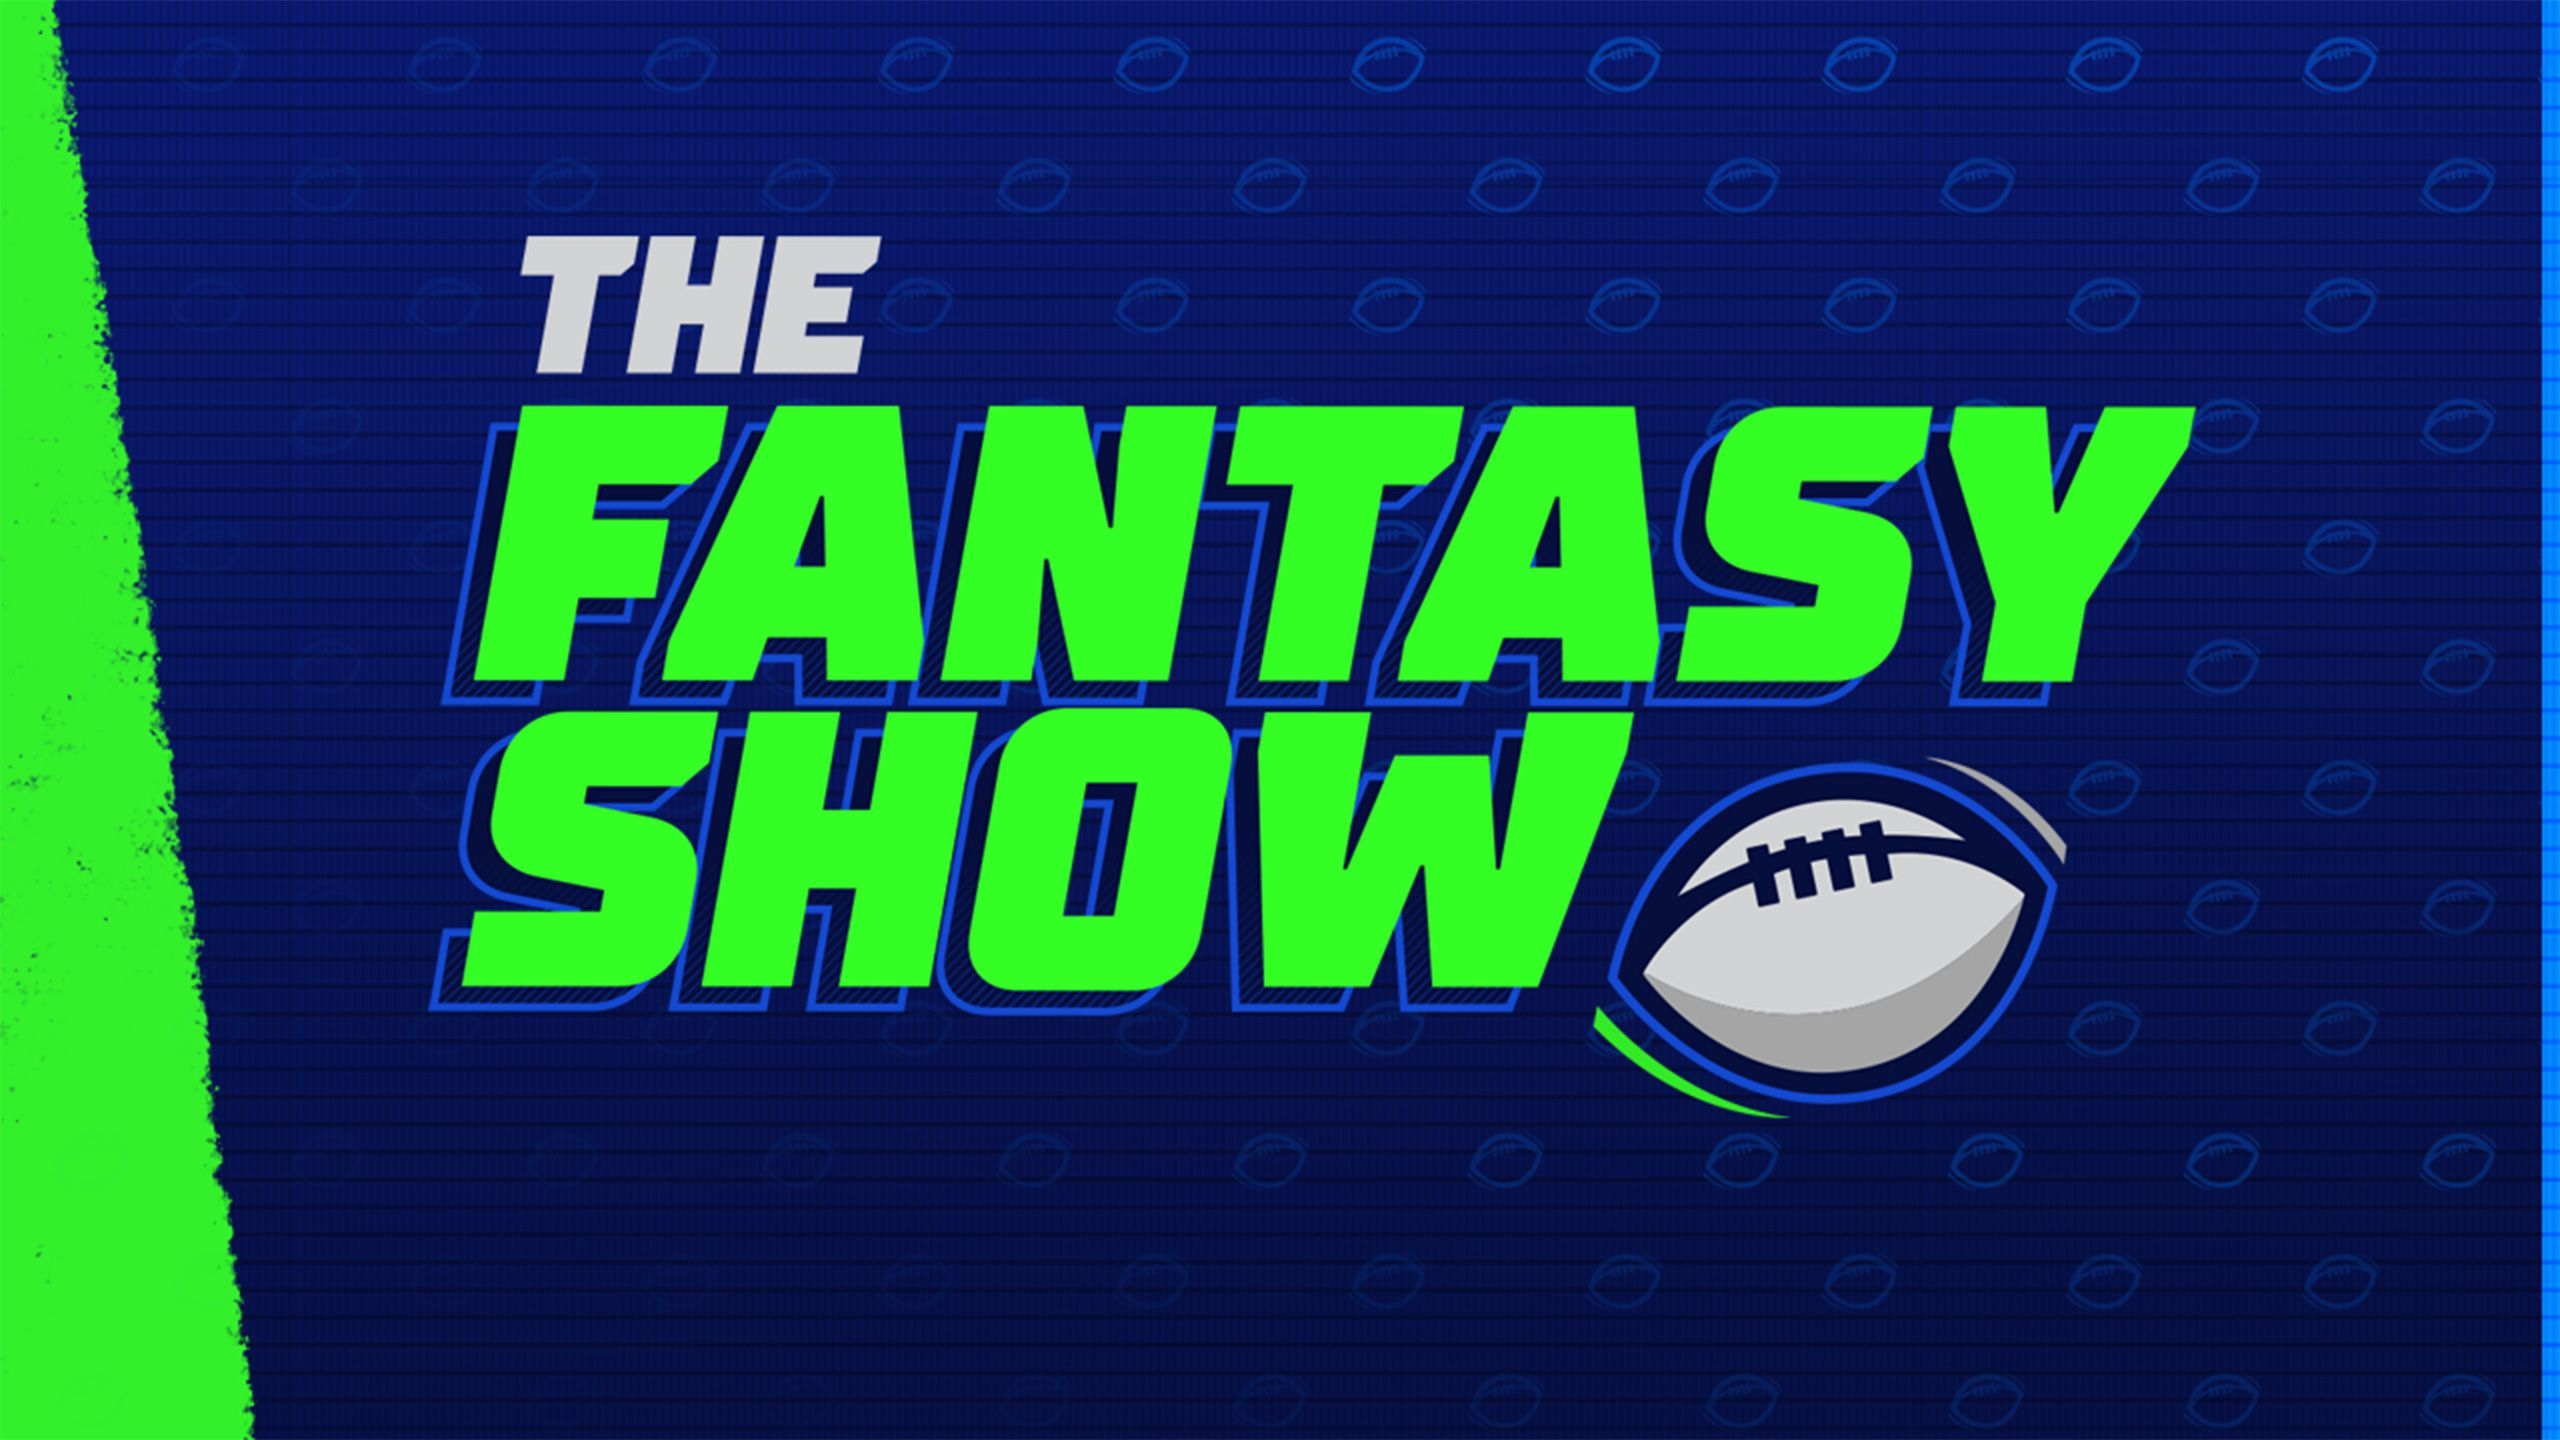 Thu, 11/16 - The Fantasy Show presented by E*Trade